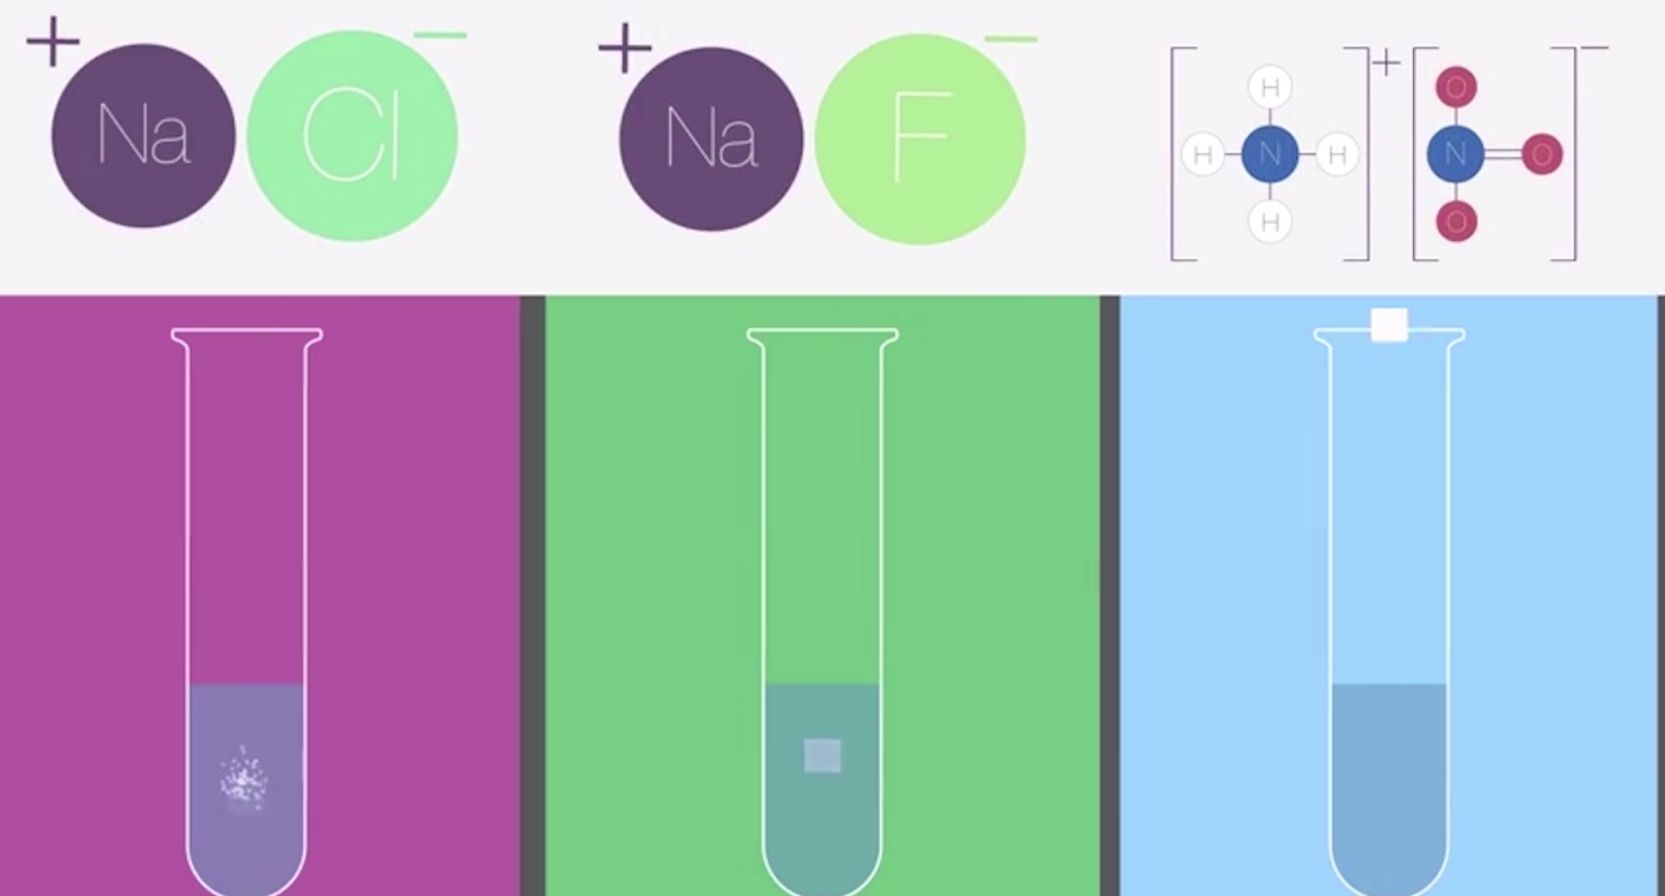 Chem A Video Intro Image